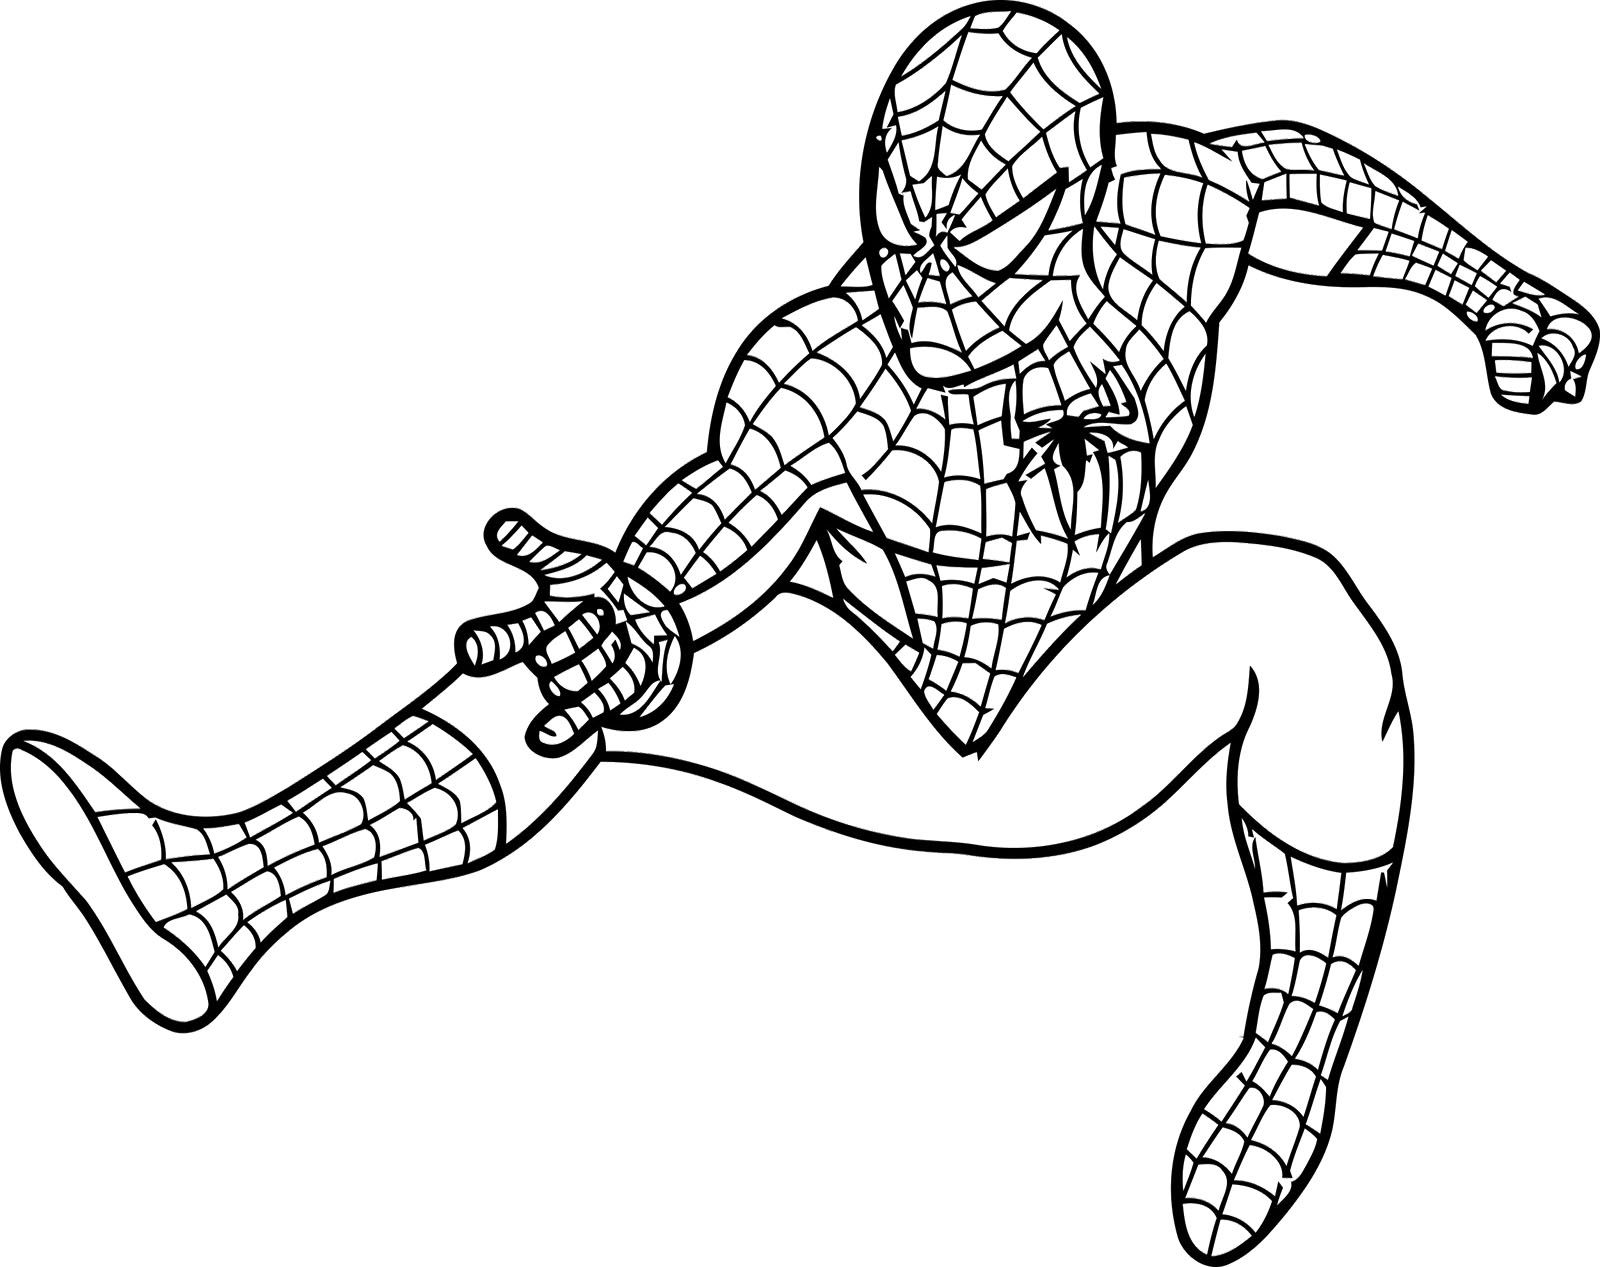 spiderman pages spiderman pictures page coloring pages carnage - Coloring Games For Toddlers Online Free